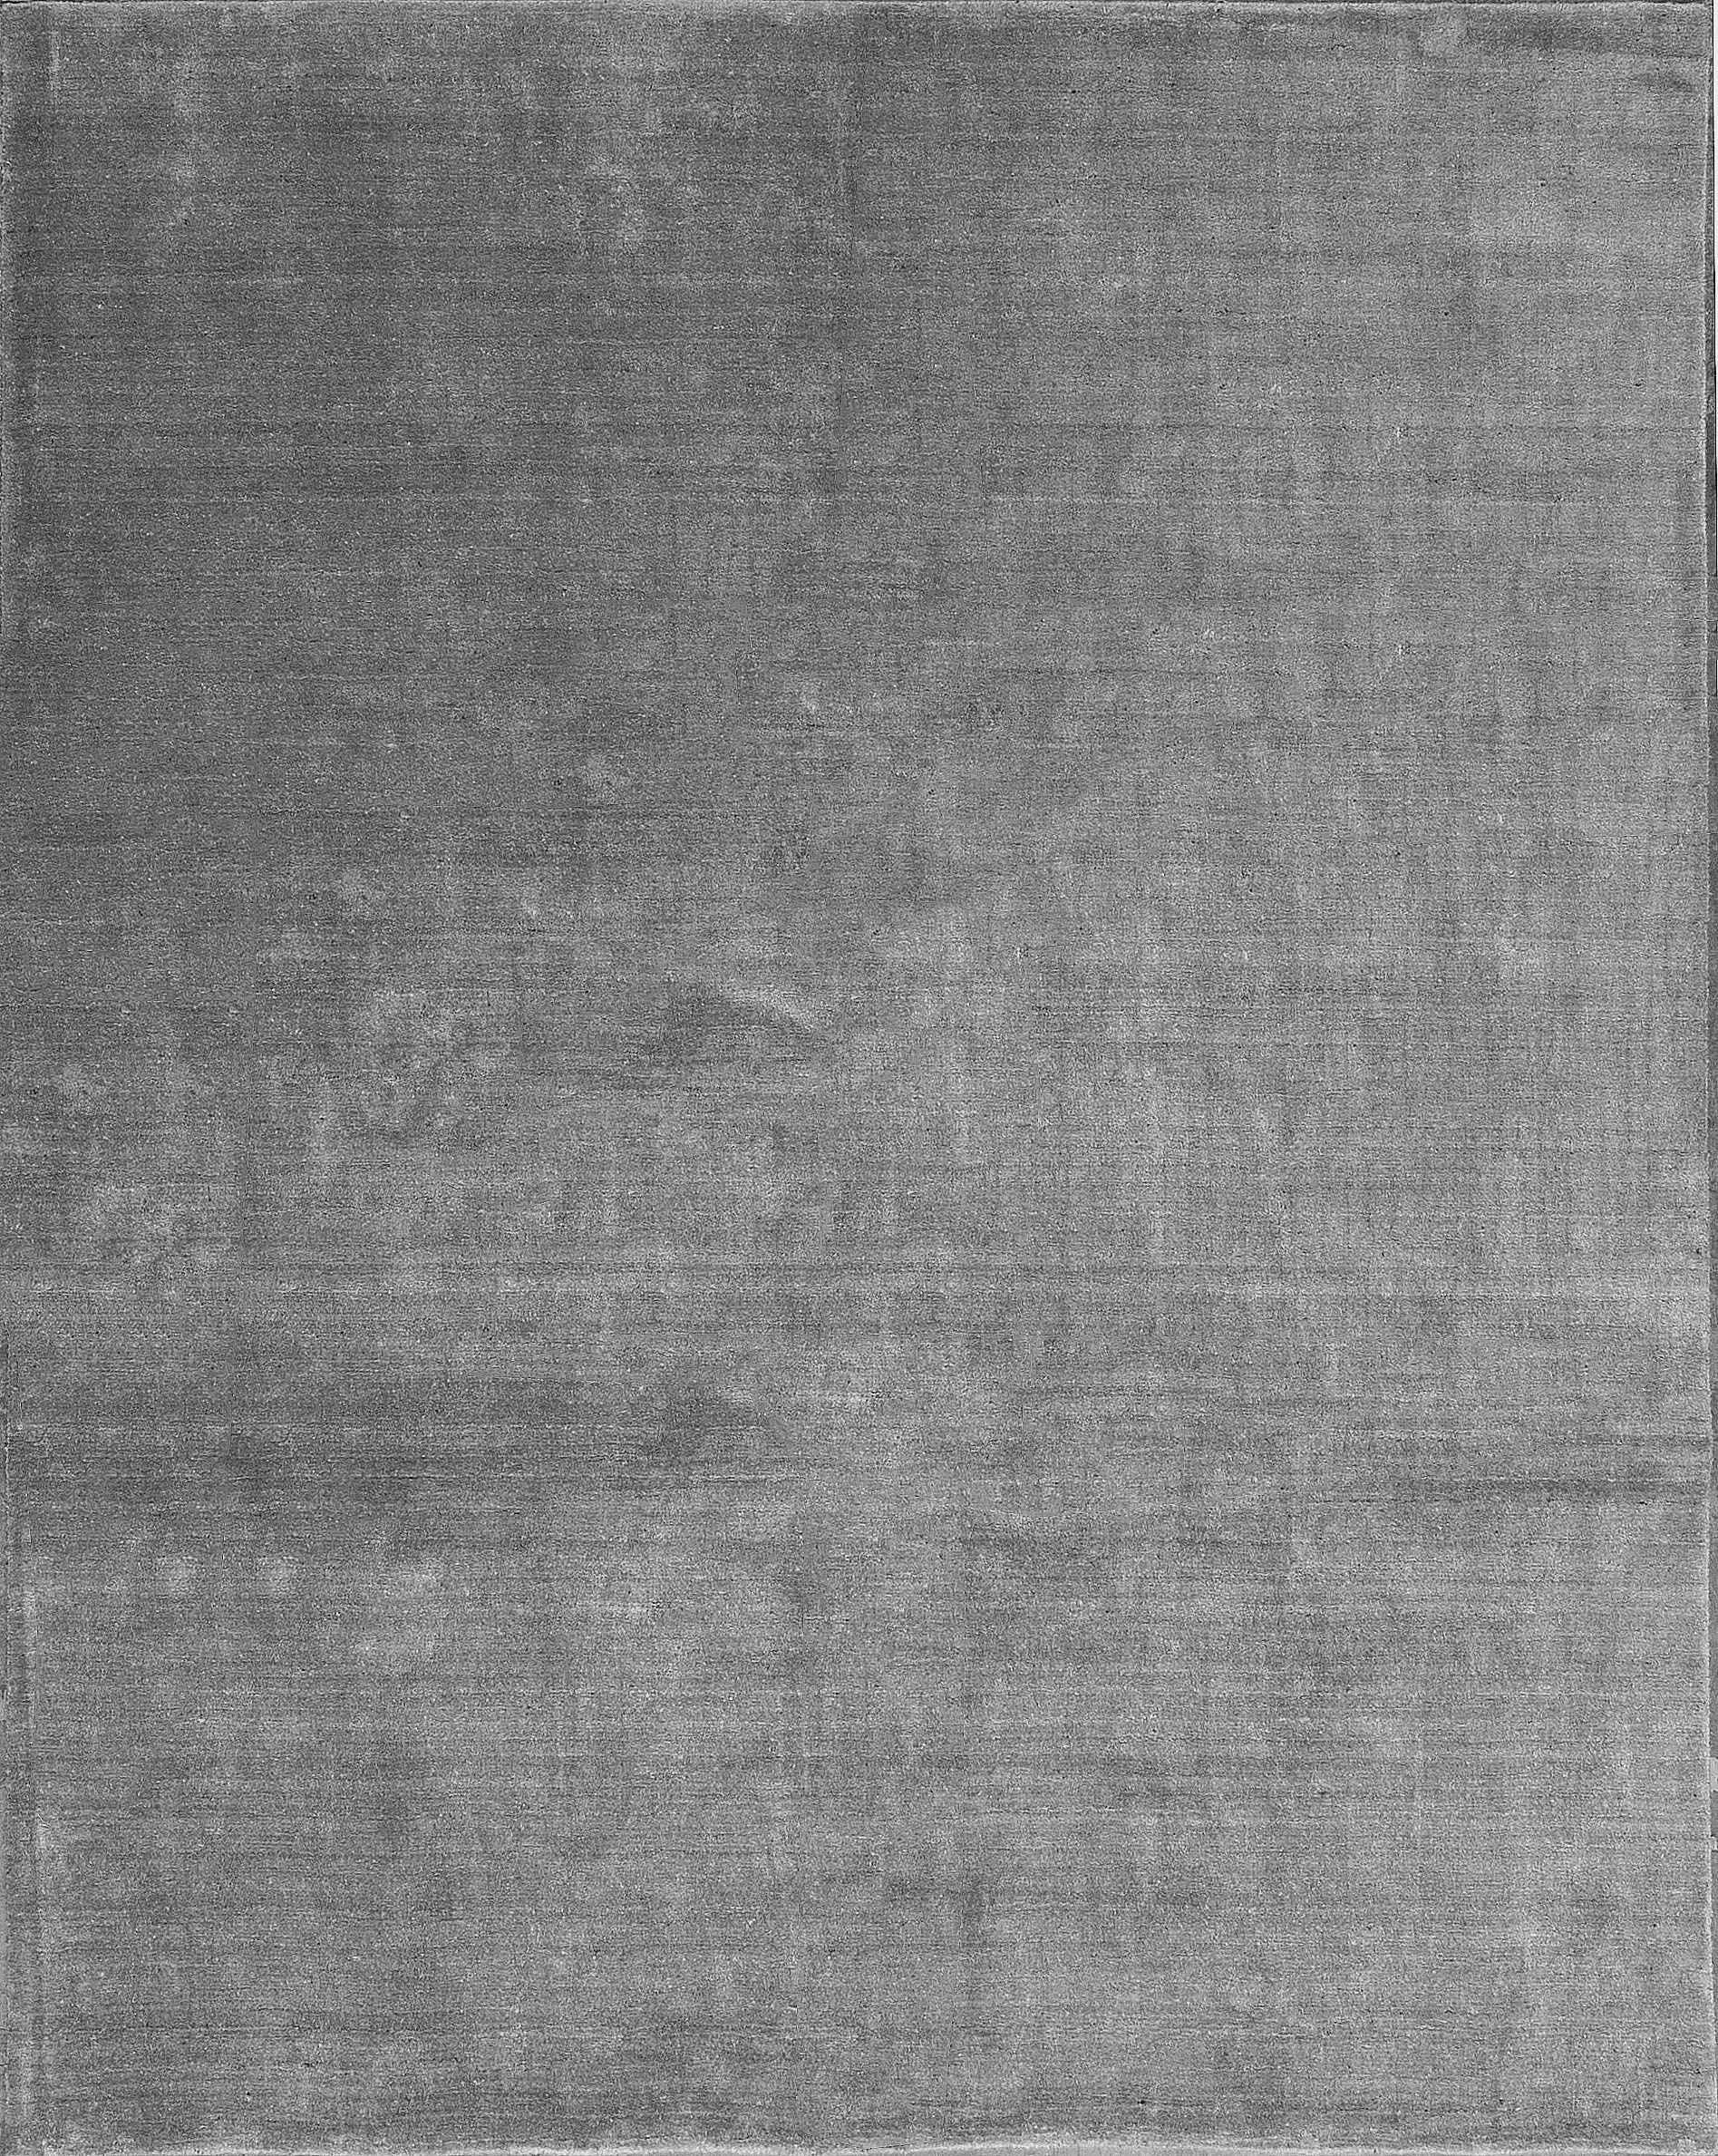 One-of-a-Kind Gabbeh Hand-Knotted Gray Area Rug